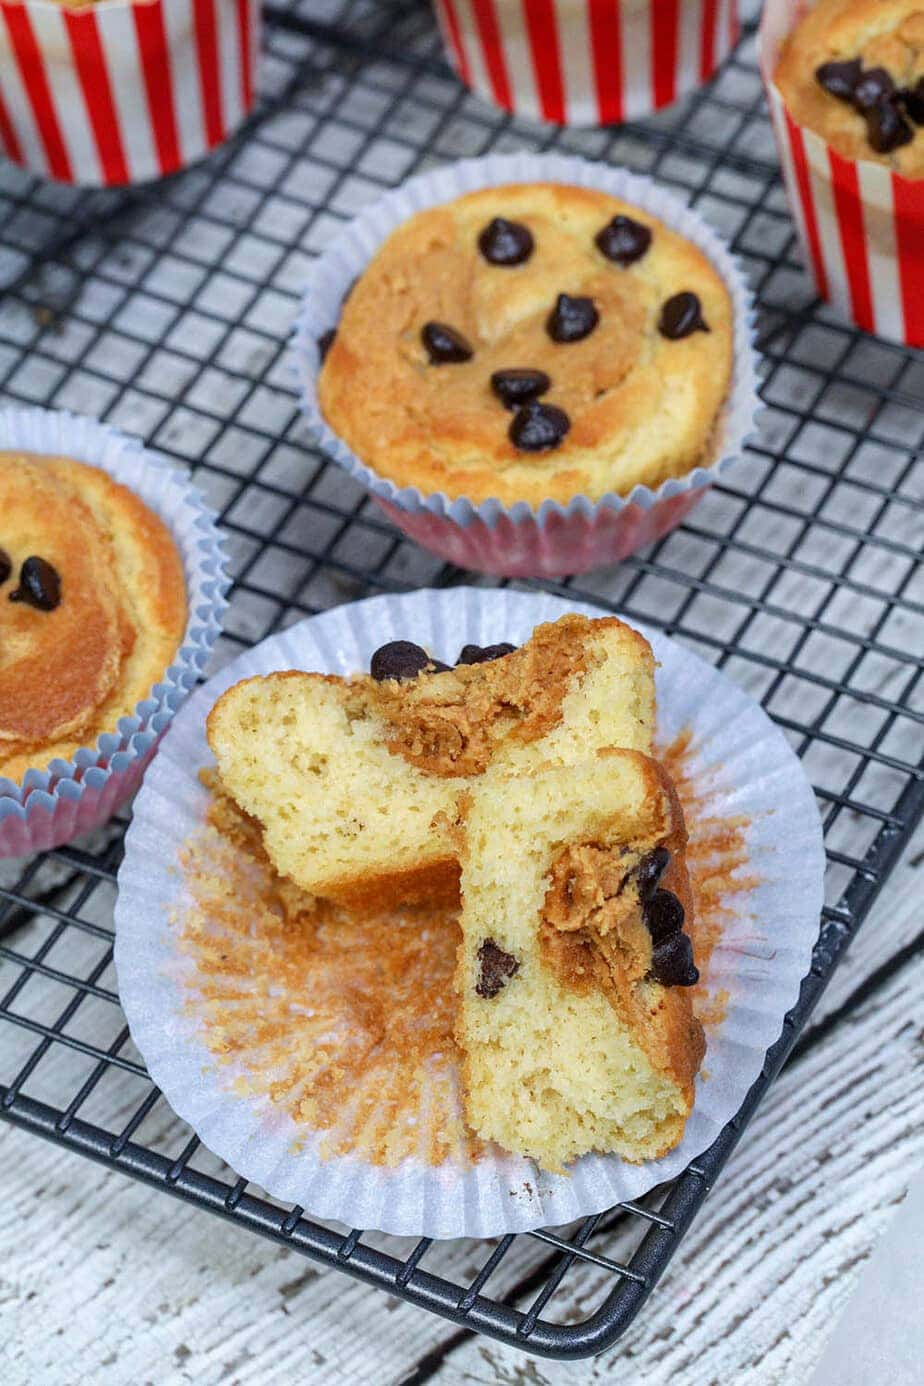 keto peanut butter muffin on tray